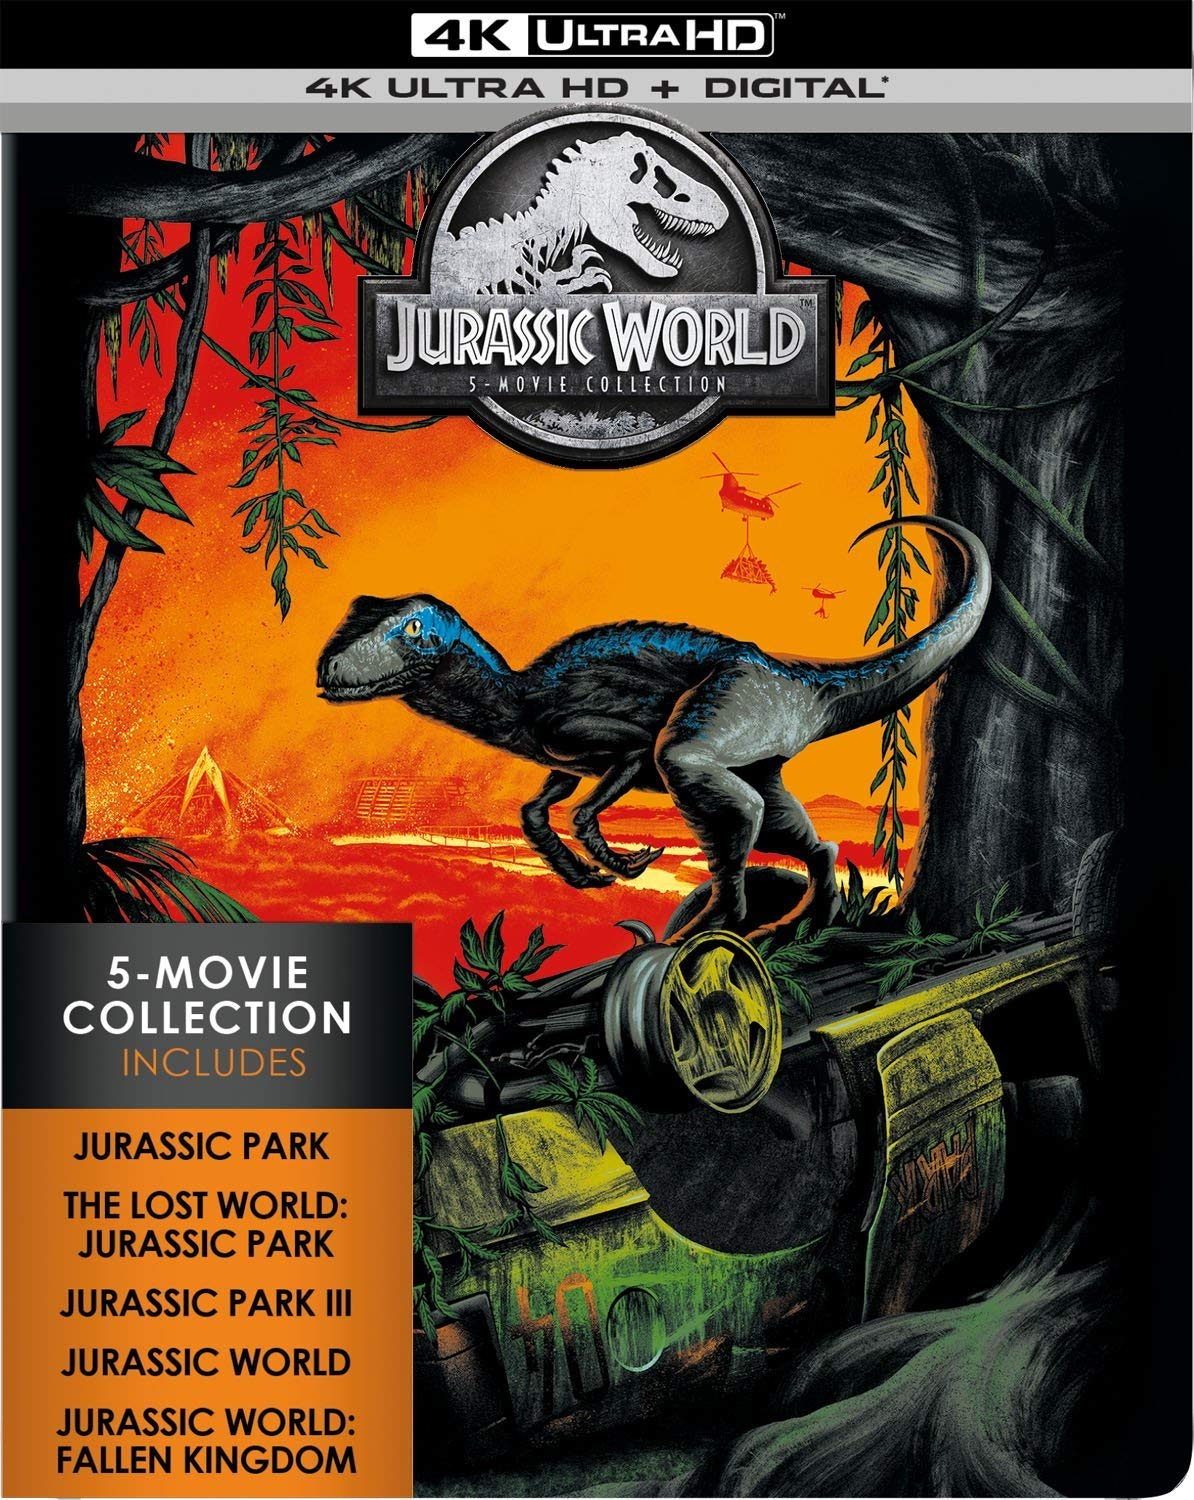 Jurassic World- 5-Movie Collection 4k Blu-ray